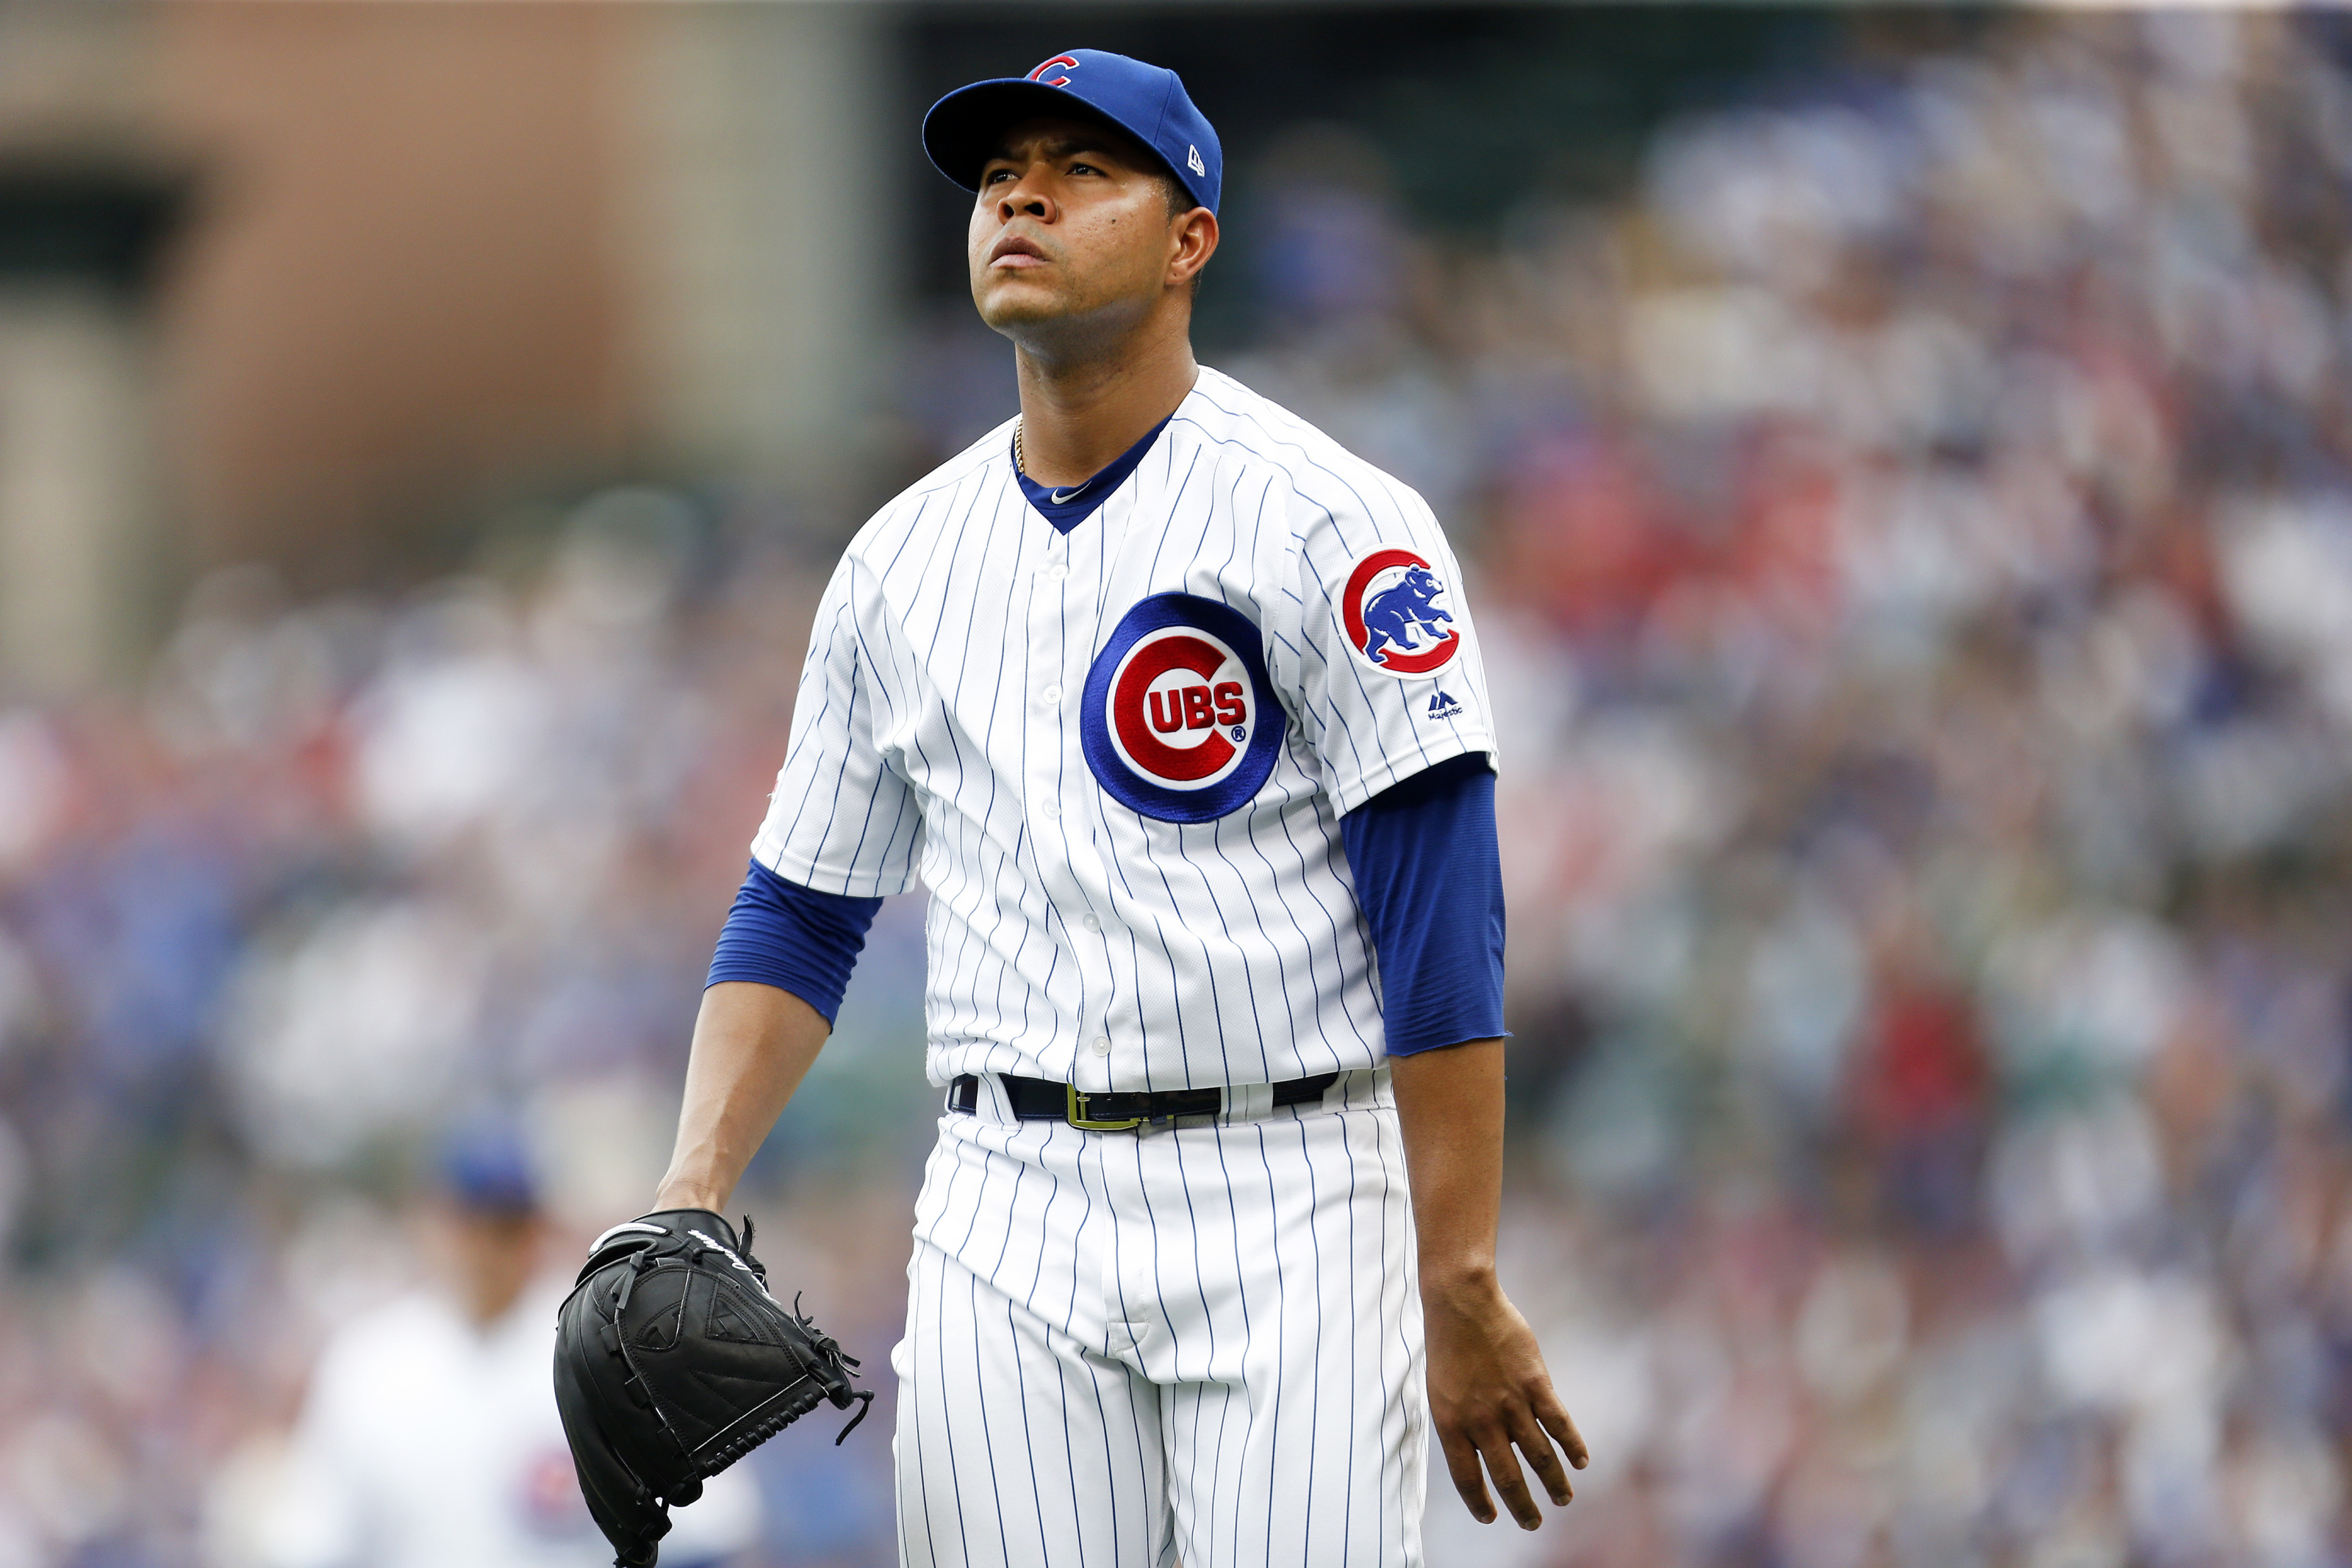 Chicago Cubs: Jose Quintana trade continues to get worse